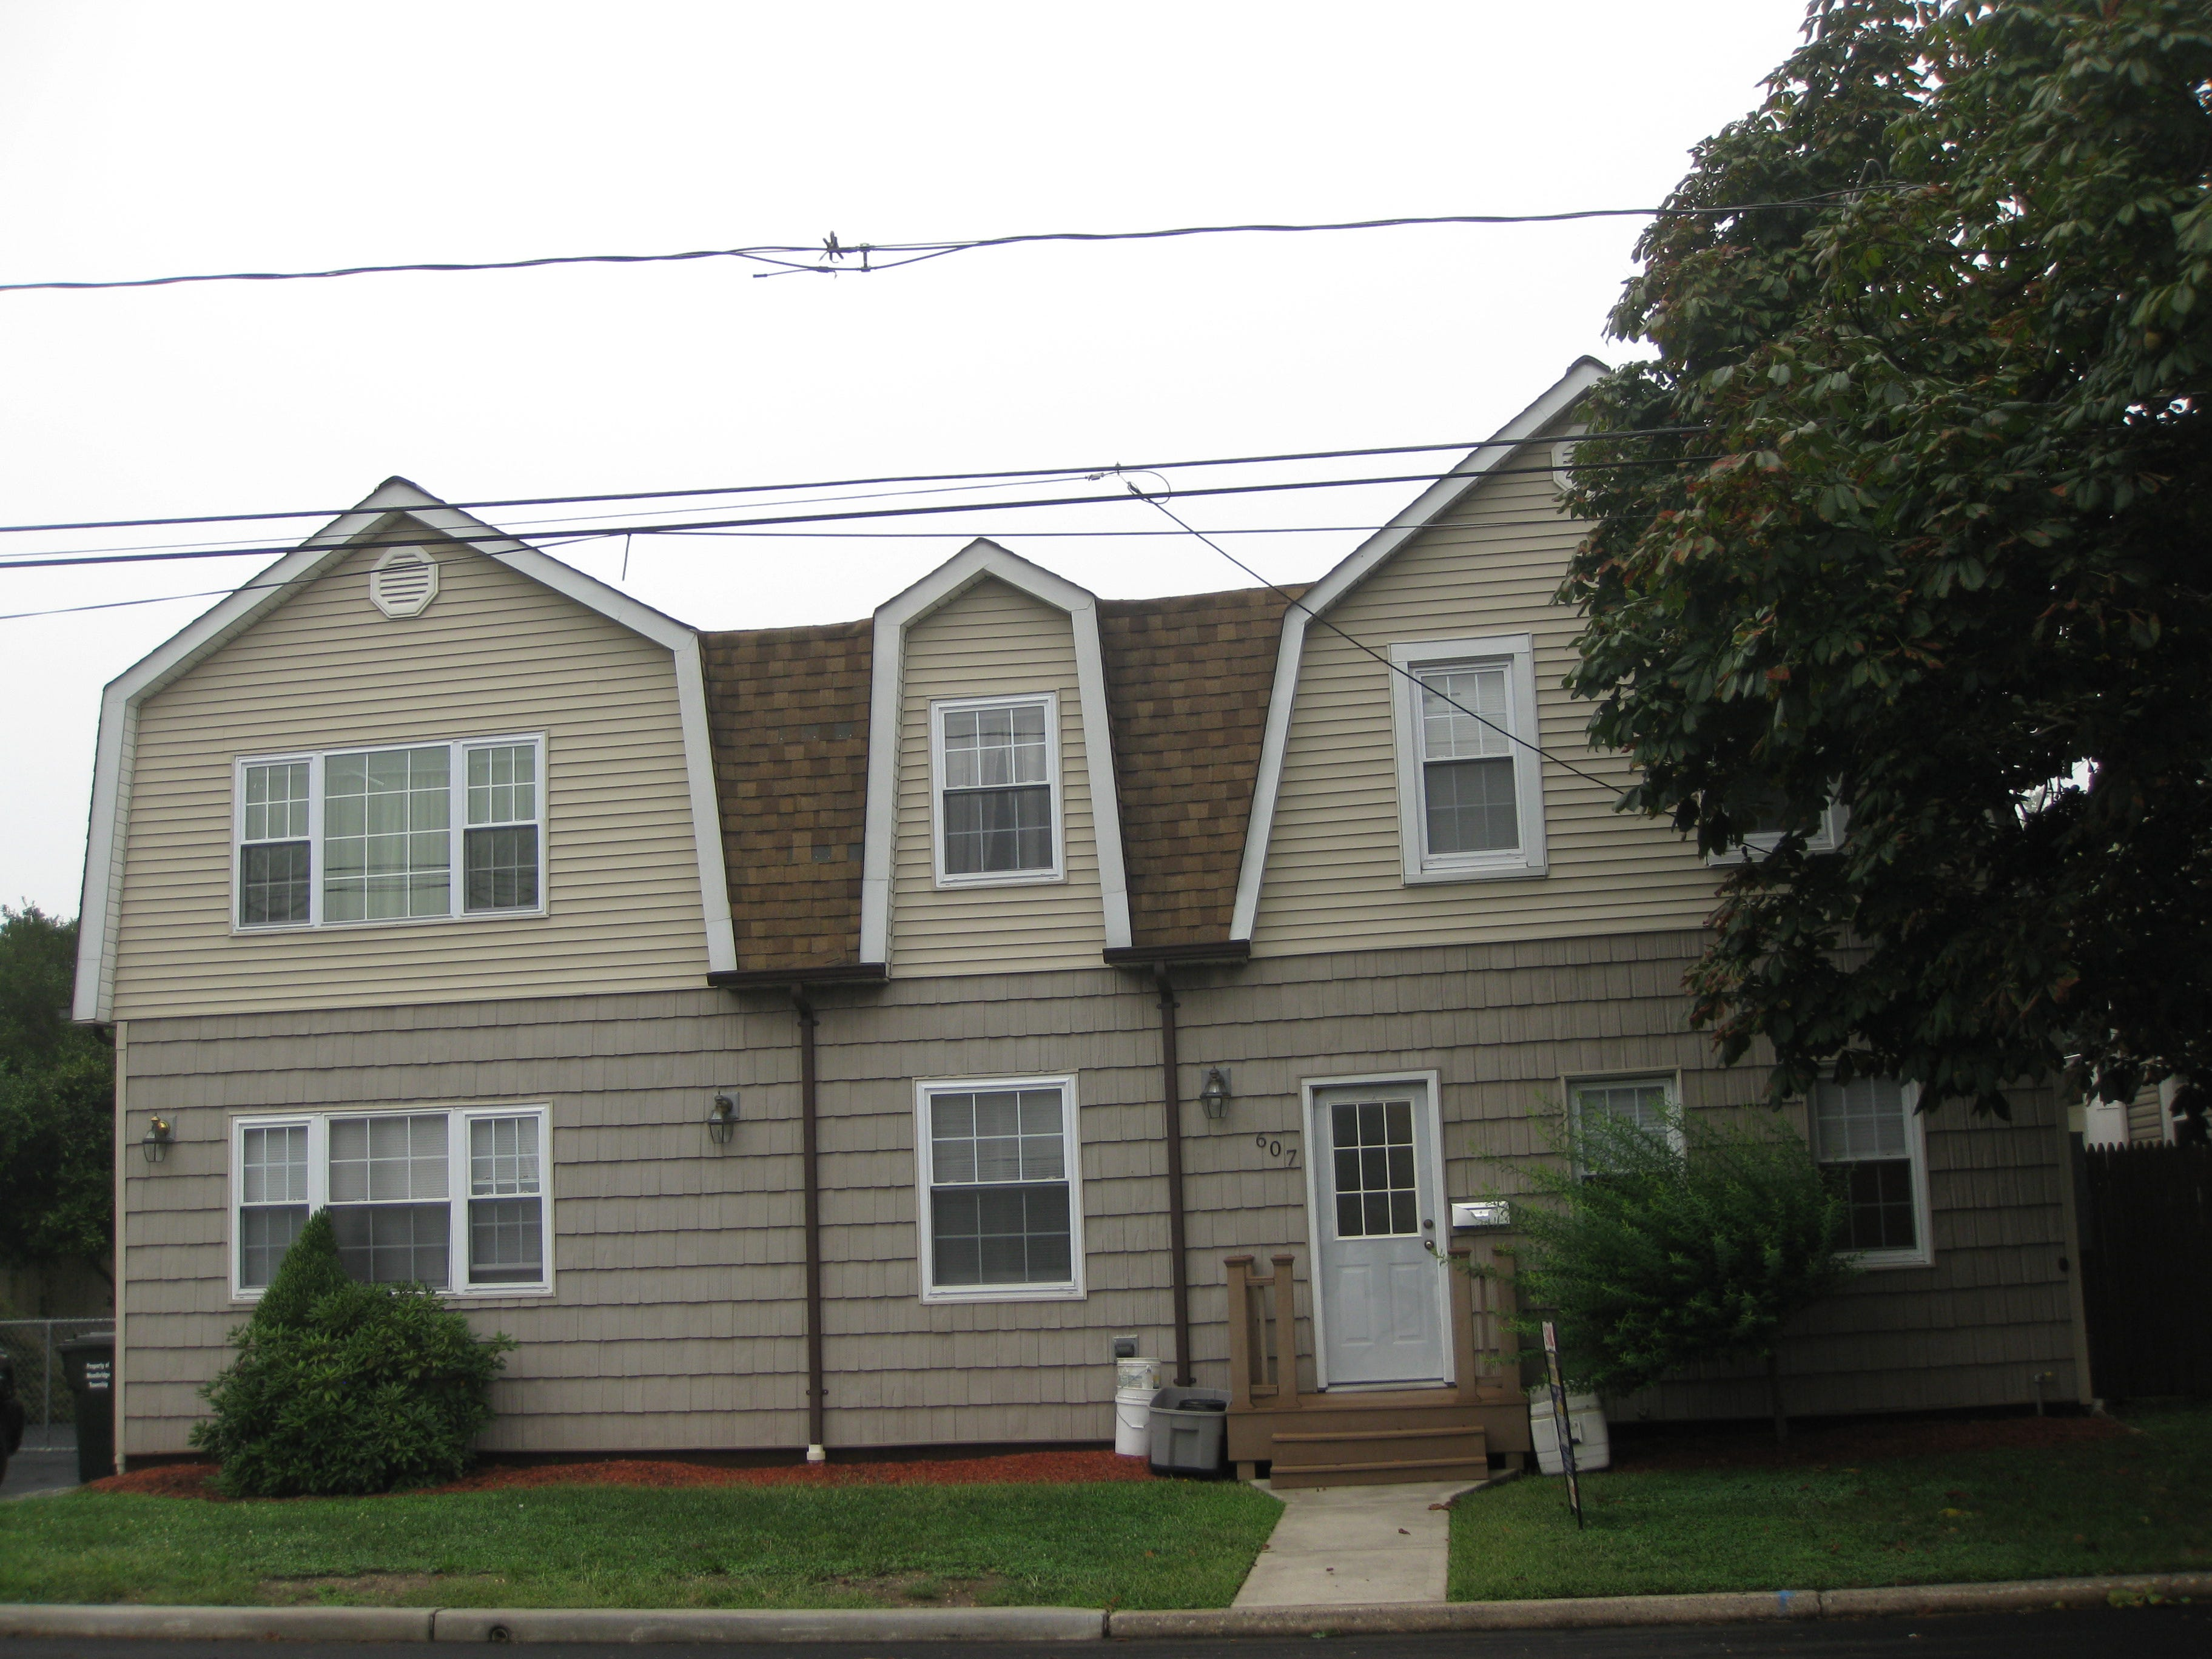 This two-family home in the heart of Woodbridge has a convenient location, two two-bedroom apartments with eat-in kitchens, a fenced backyard with a swimming pool and a full basement. It's offered at $494,900.